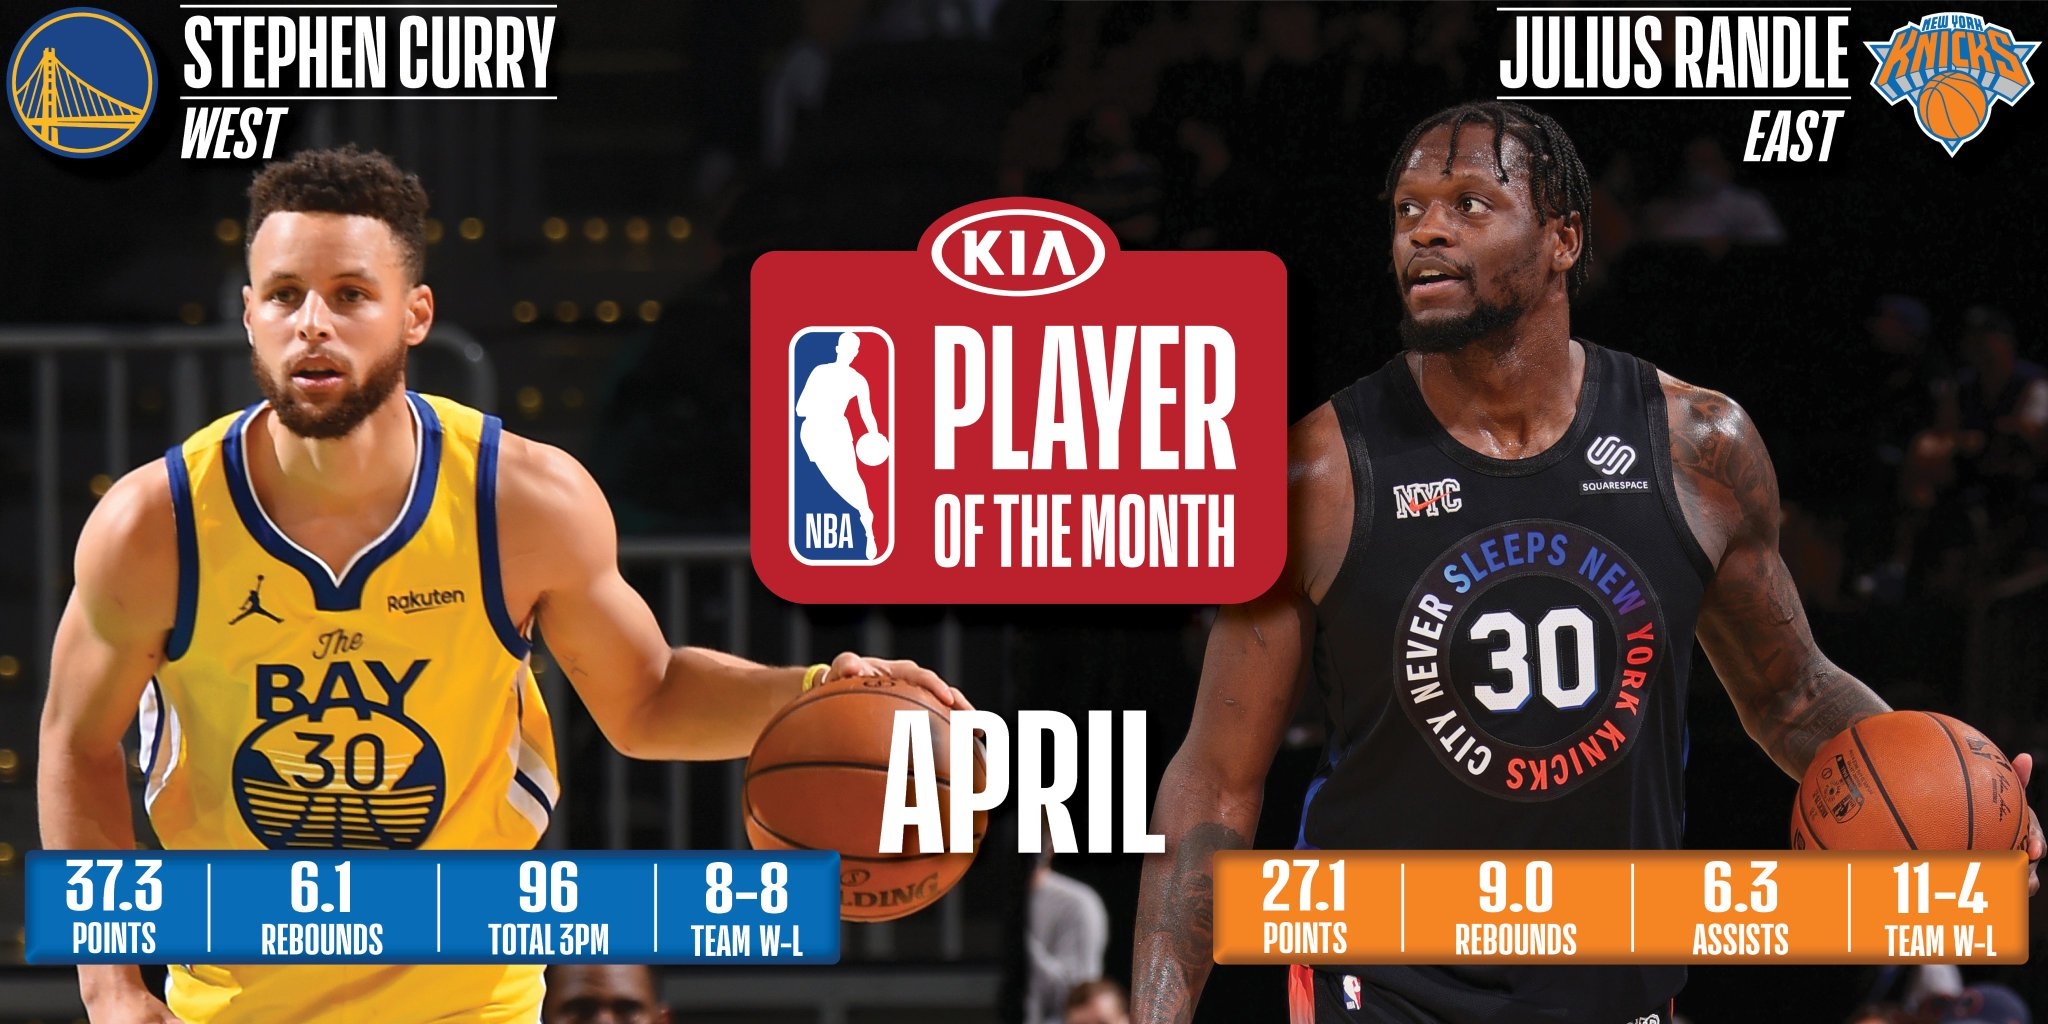 Stephen Curry, Julius Randle named Kia NBA Players of the Month